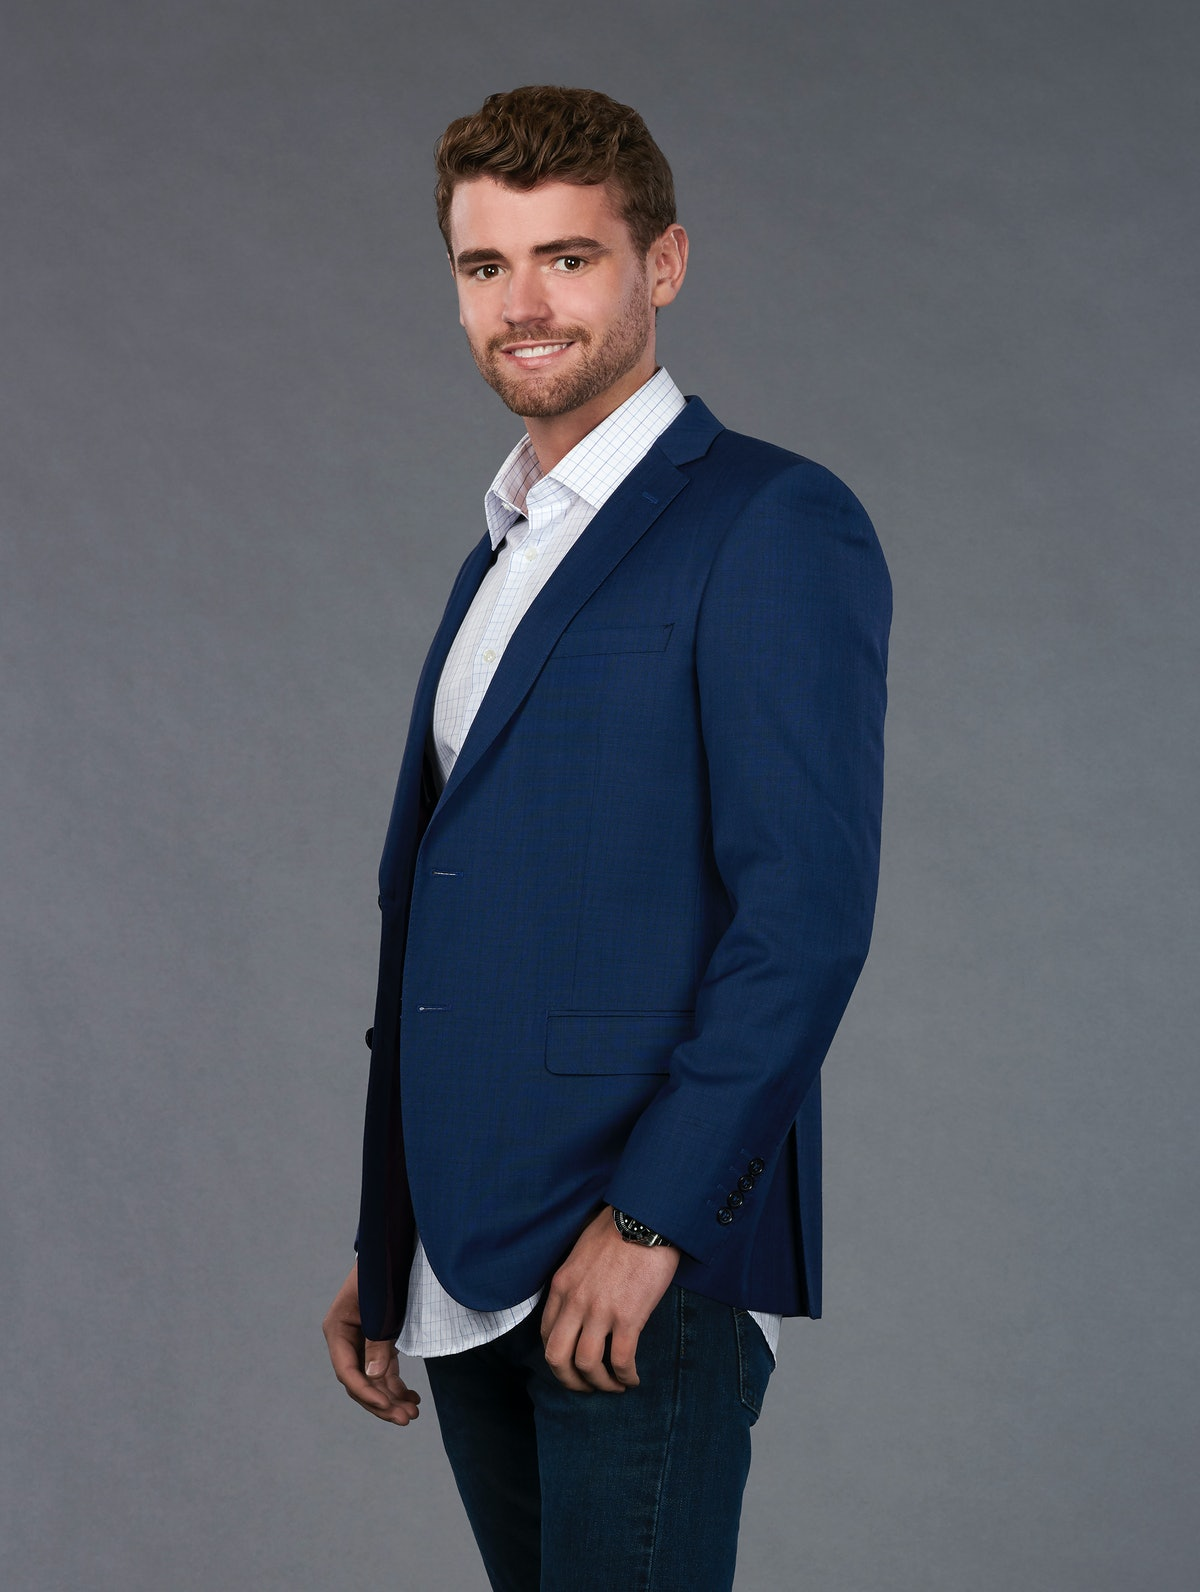 What Is Luke S.'s Job? 'The Bachelorette' Contestant Has An Important Title Fellow Americans